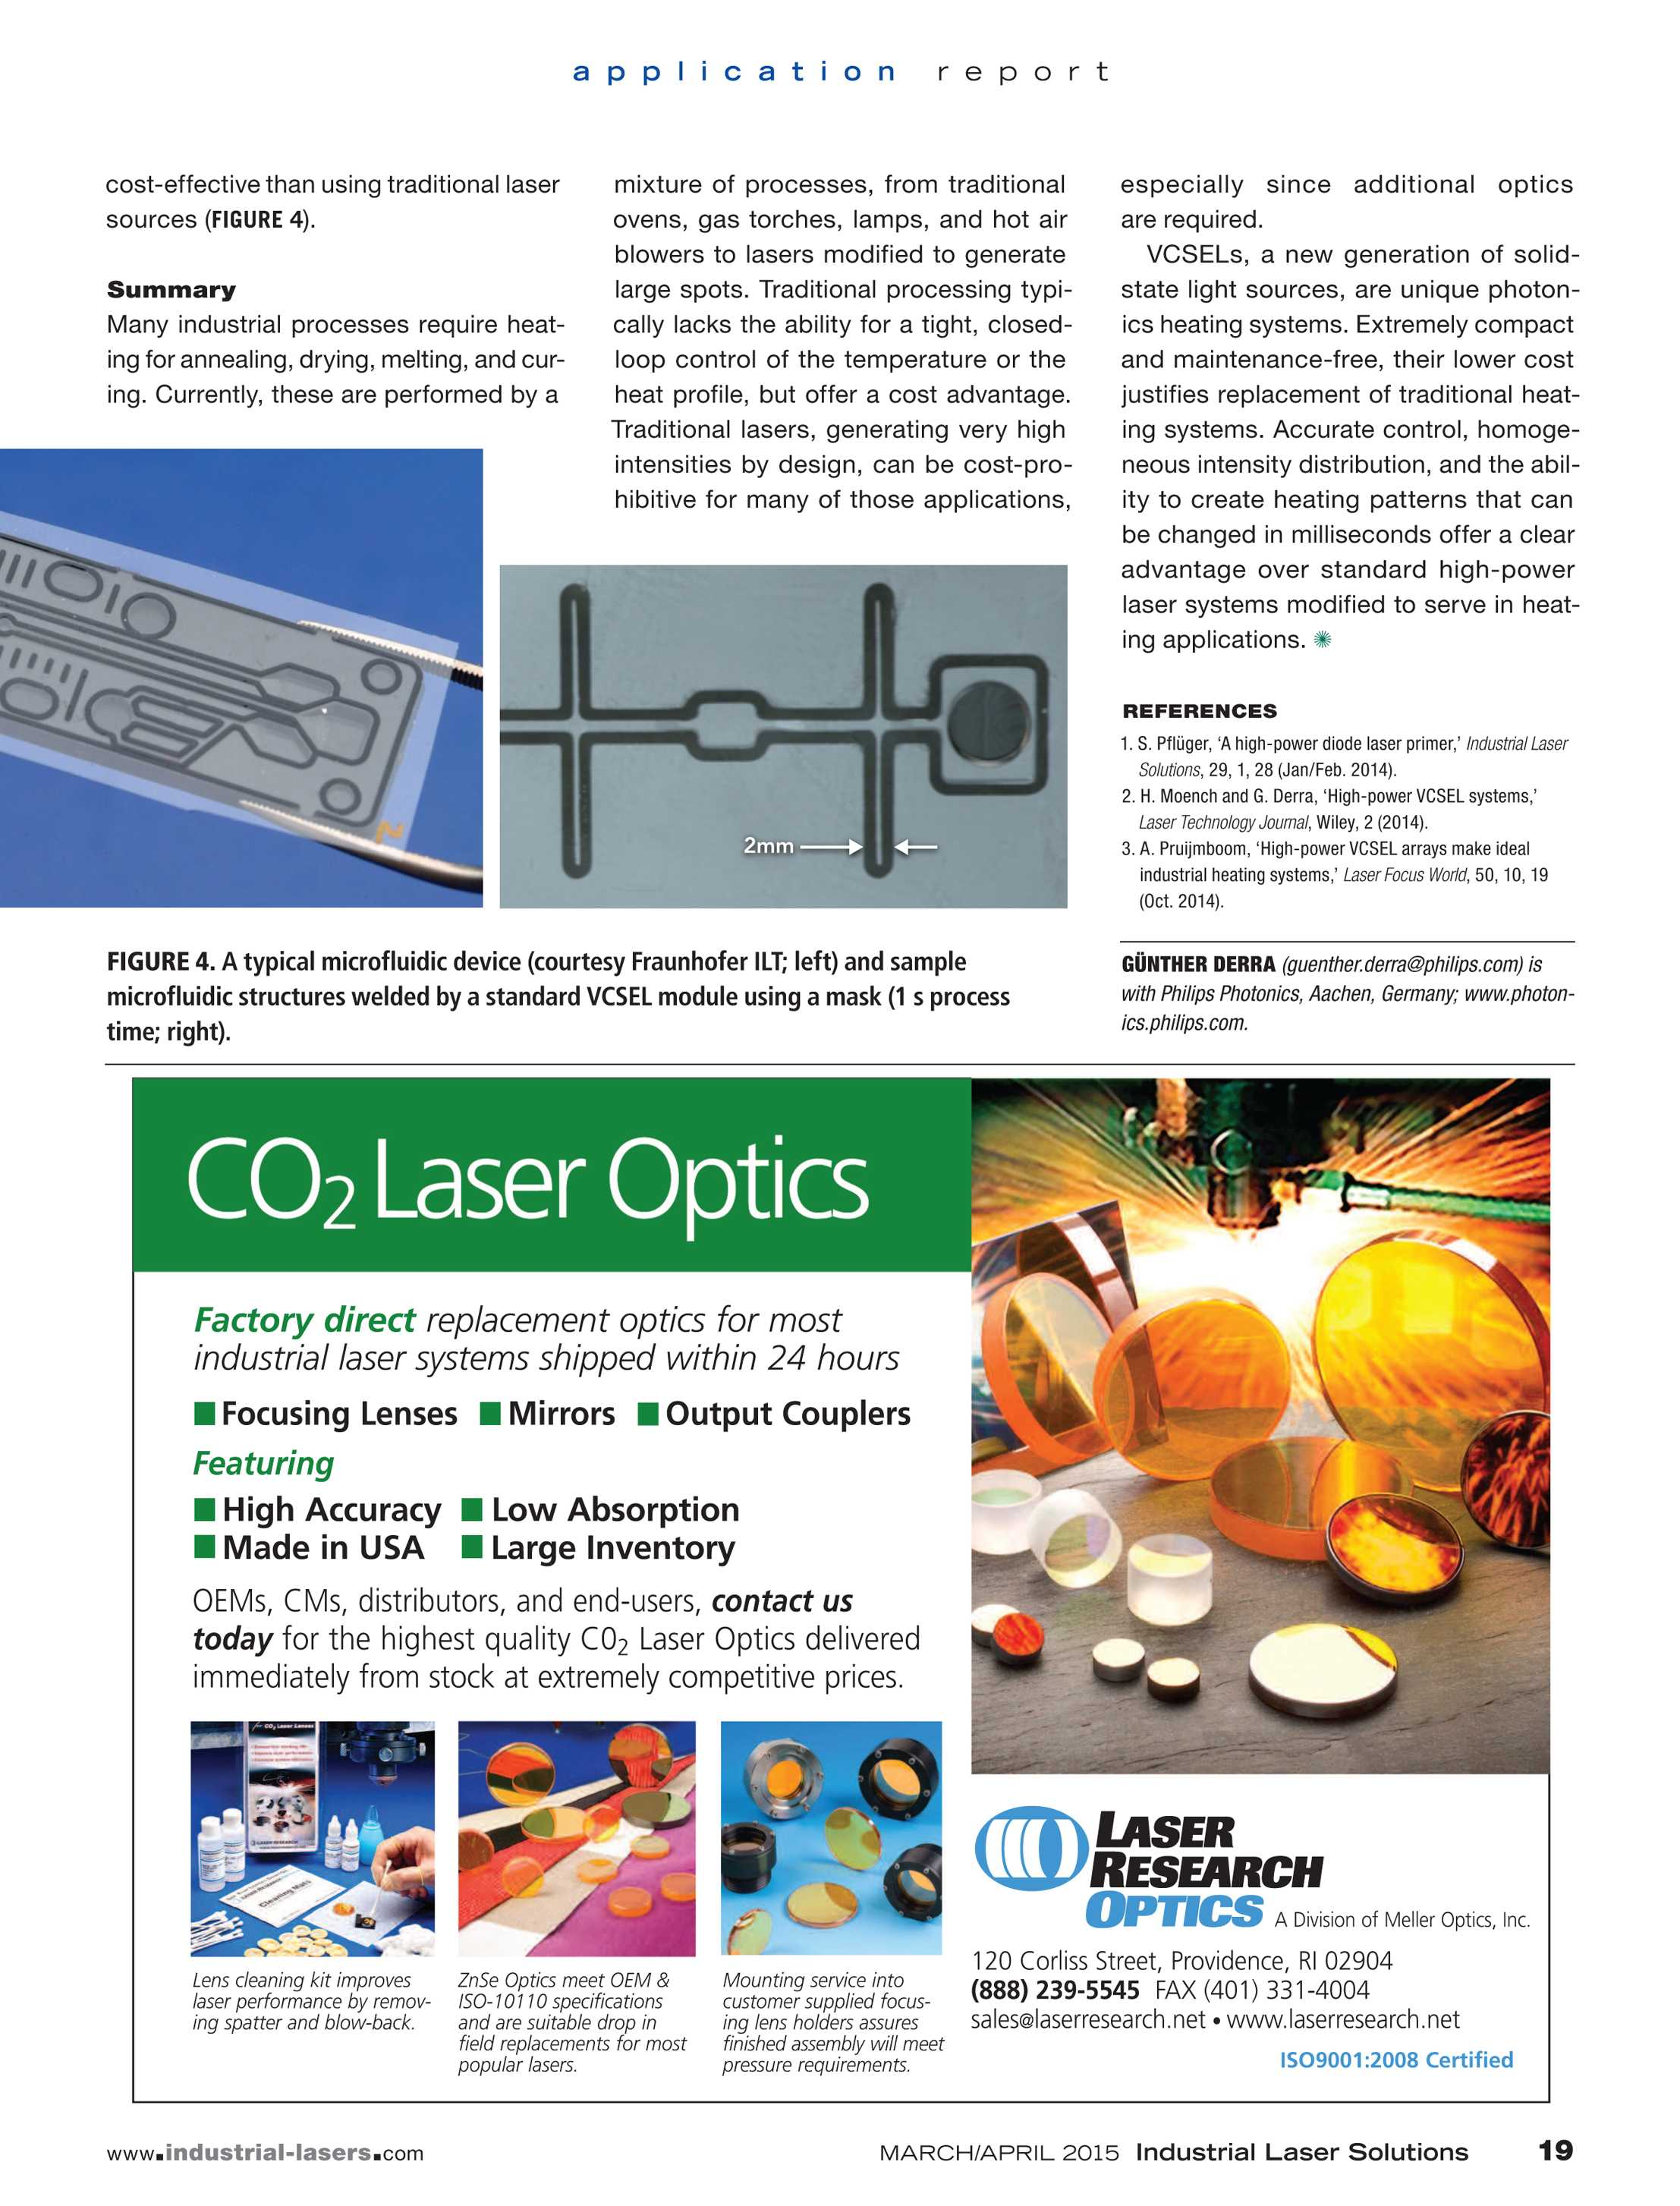 Industrial Laser Solutions - March/April 2015 - page 19